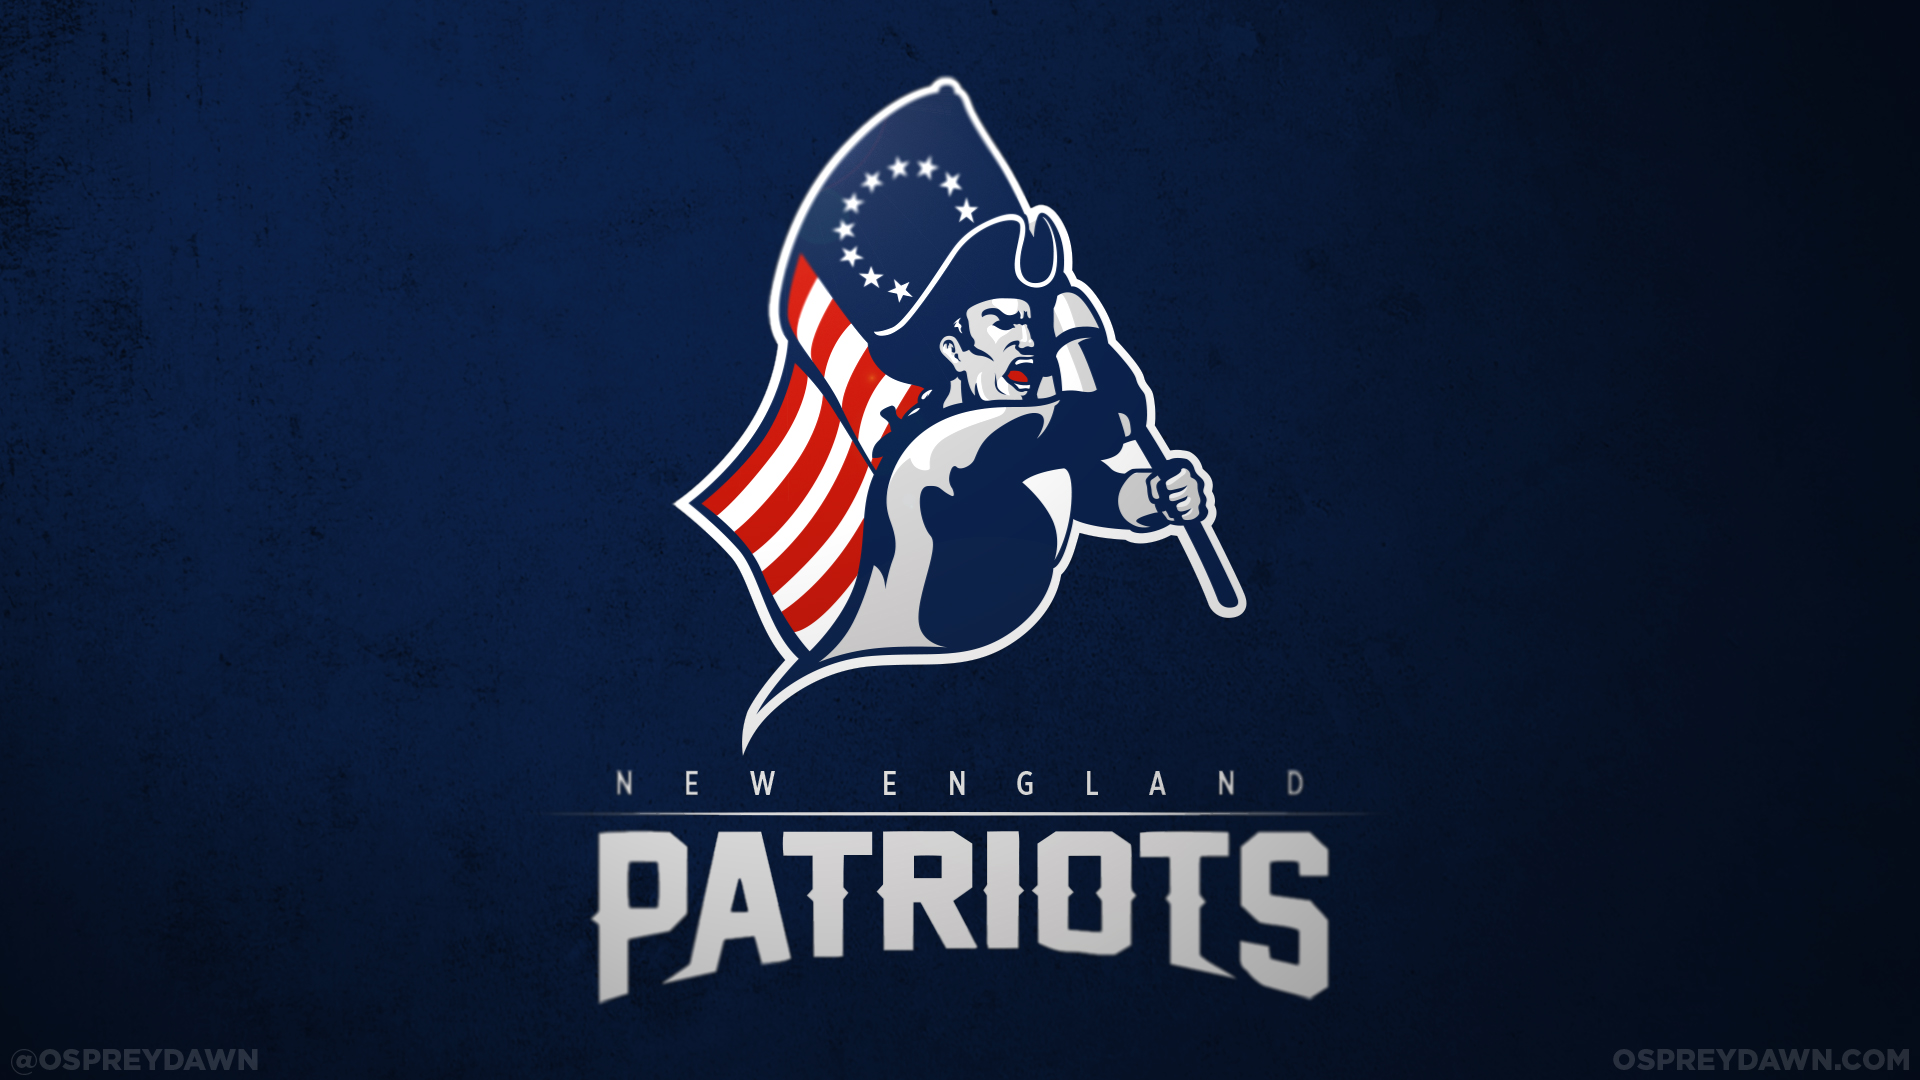 This logo is one in a series of 32 NFL Logo redesigns The NFL 1920x1080